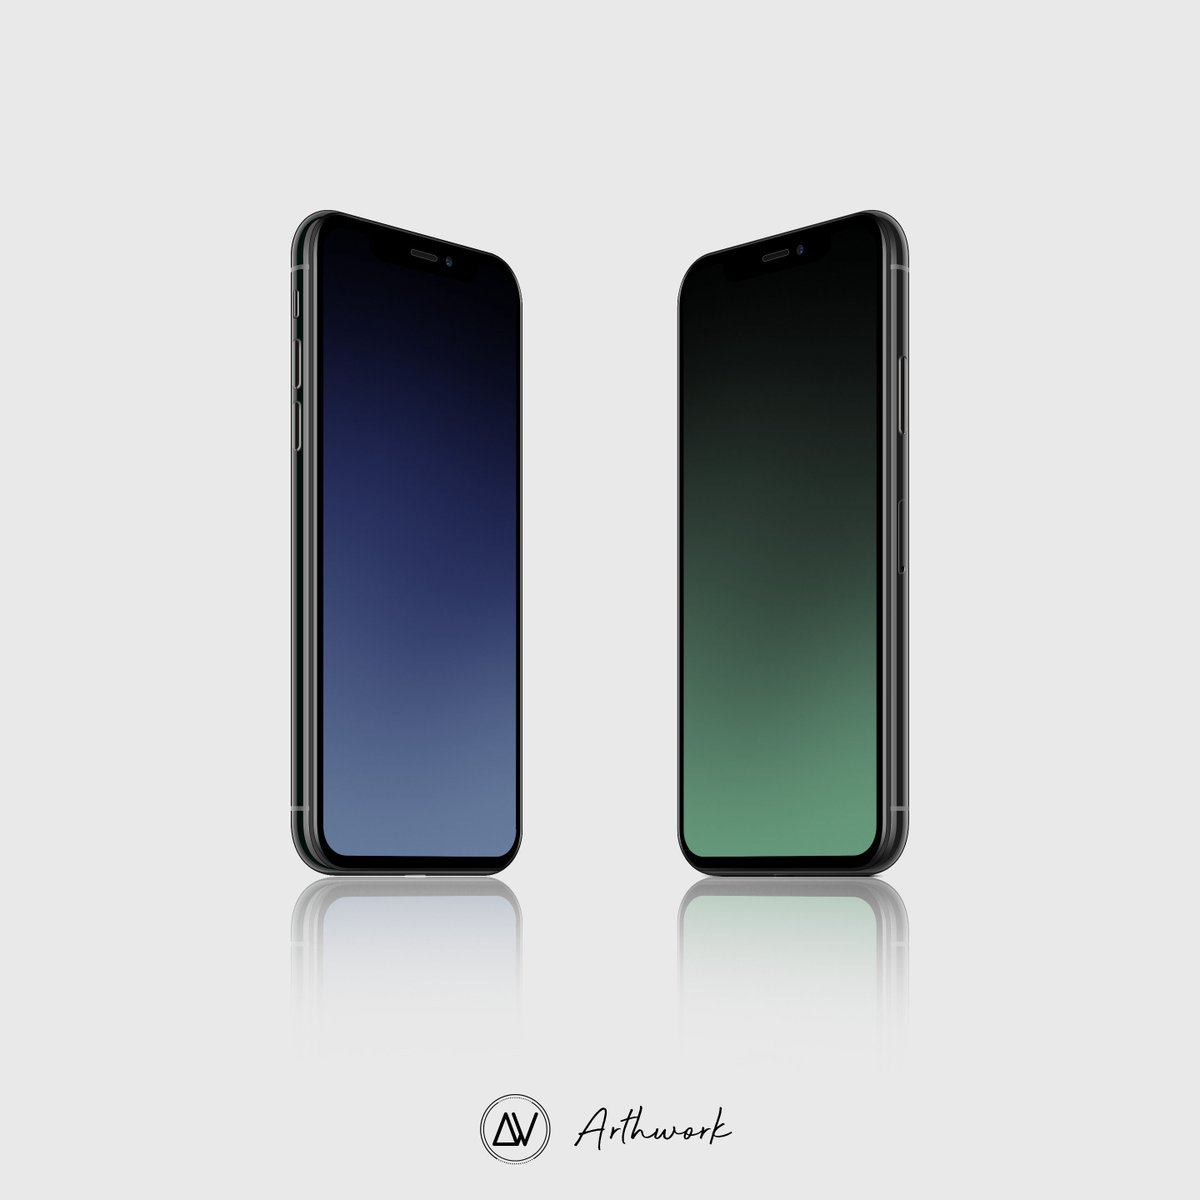 Arthwork On Twitter Simple Gradient Wallpapers Midnight Blue And Midnight Green Available For Any Android Phone Iphone 11 Pro Max Prod By Arthur1992as Download Https T Co Wlfwn3rkx6 Enjoy Https T Co Mryv8qyjn9